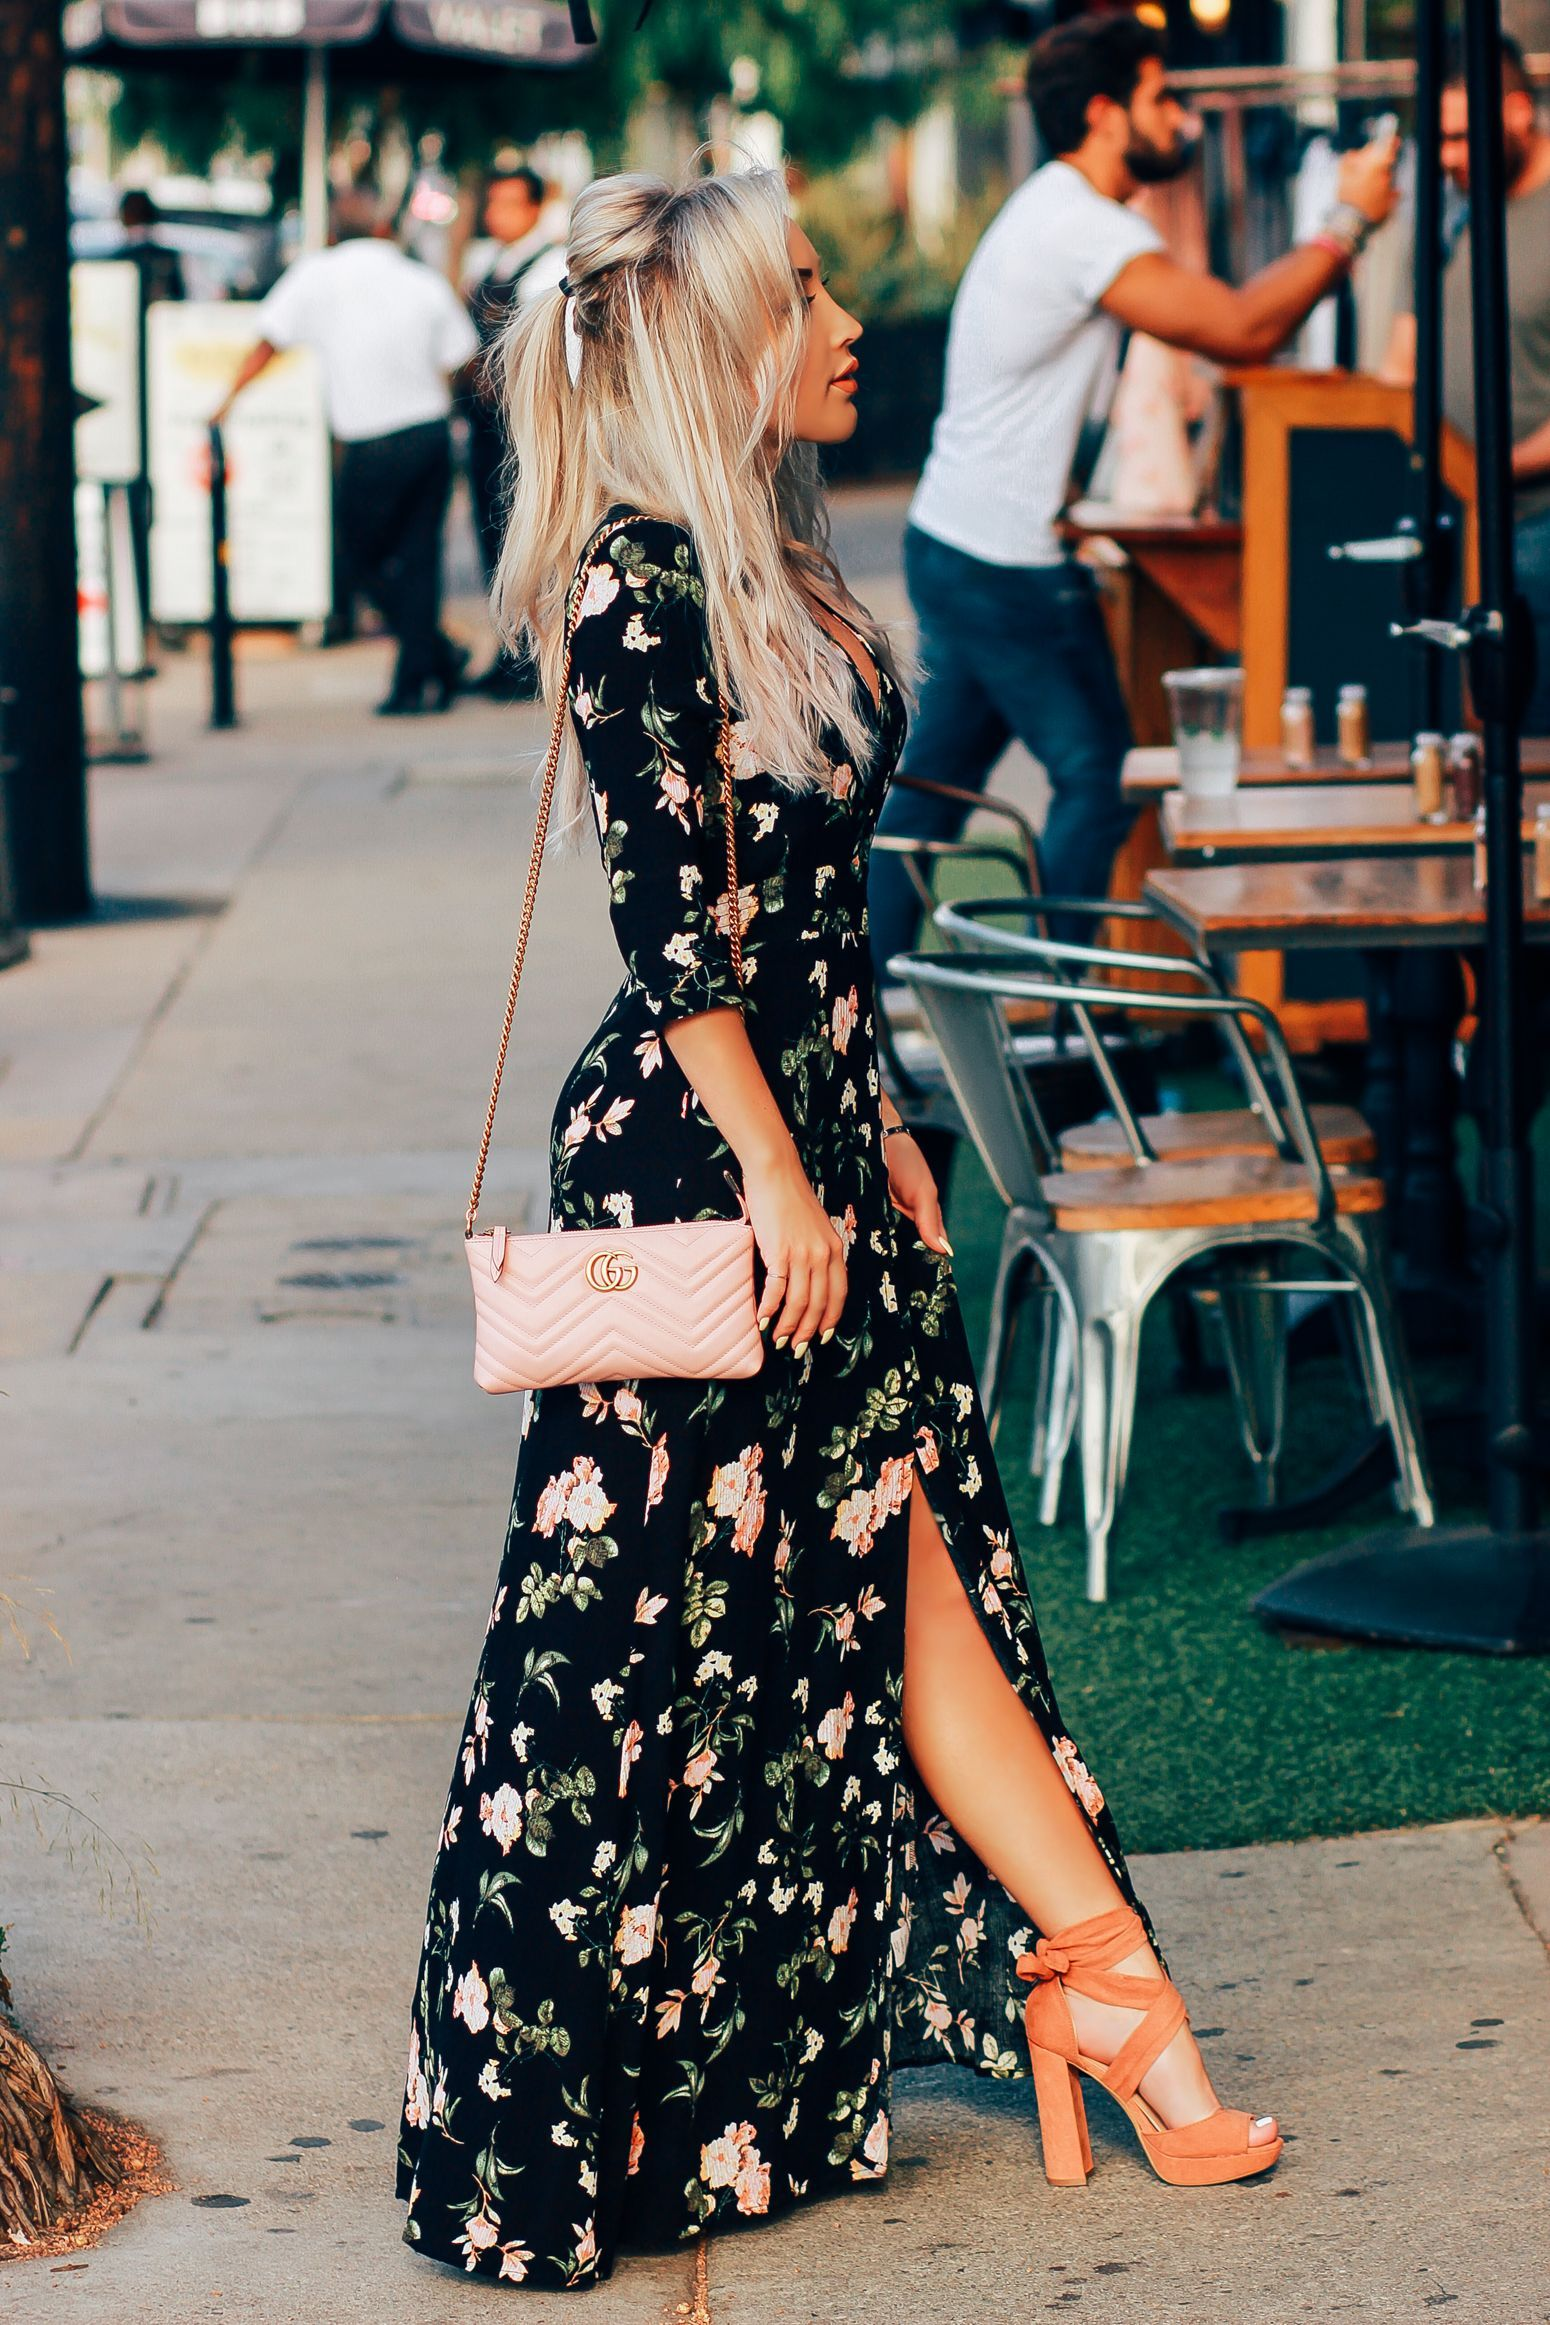 Black Floral Dress Outfit Ideas In 2020 Black Floral Maxi Dress Floral Print Dress Long Floral Maxi Dress